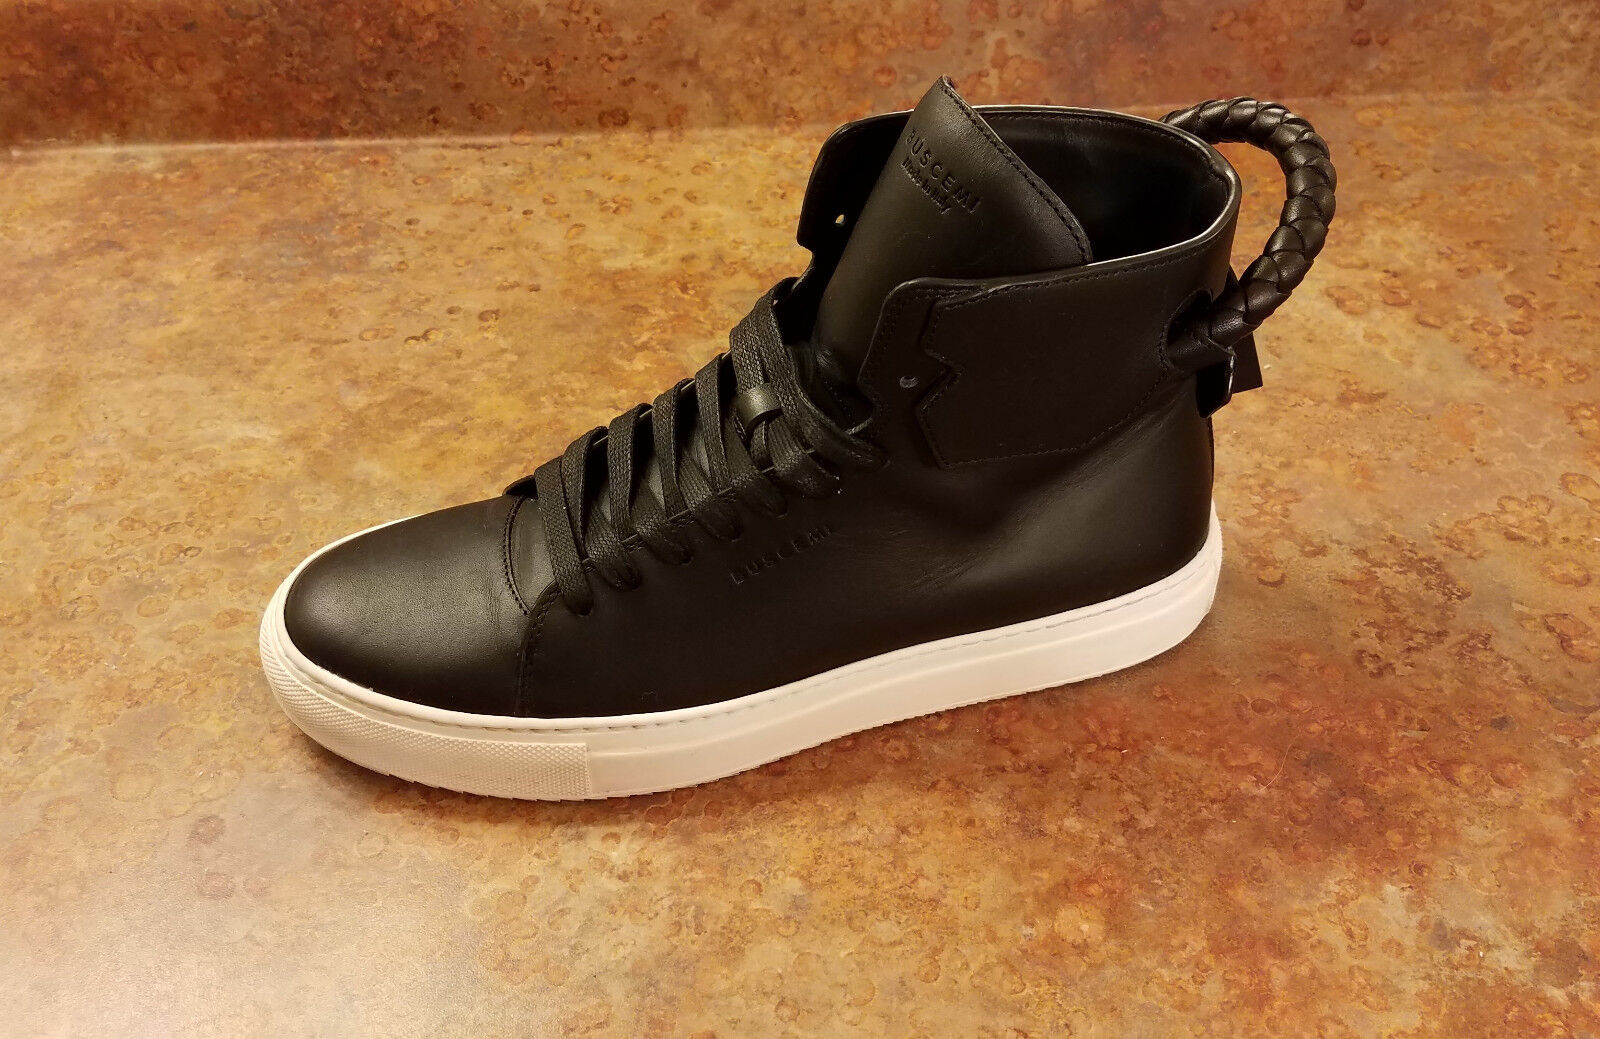 Buscemi 125mm High Top Leather Sneaker Black Mens Size 9 US 42 Eur. MSRP 825